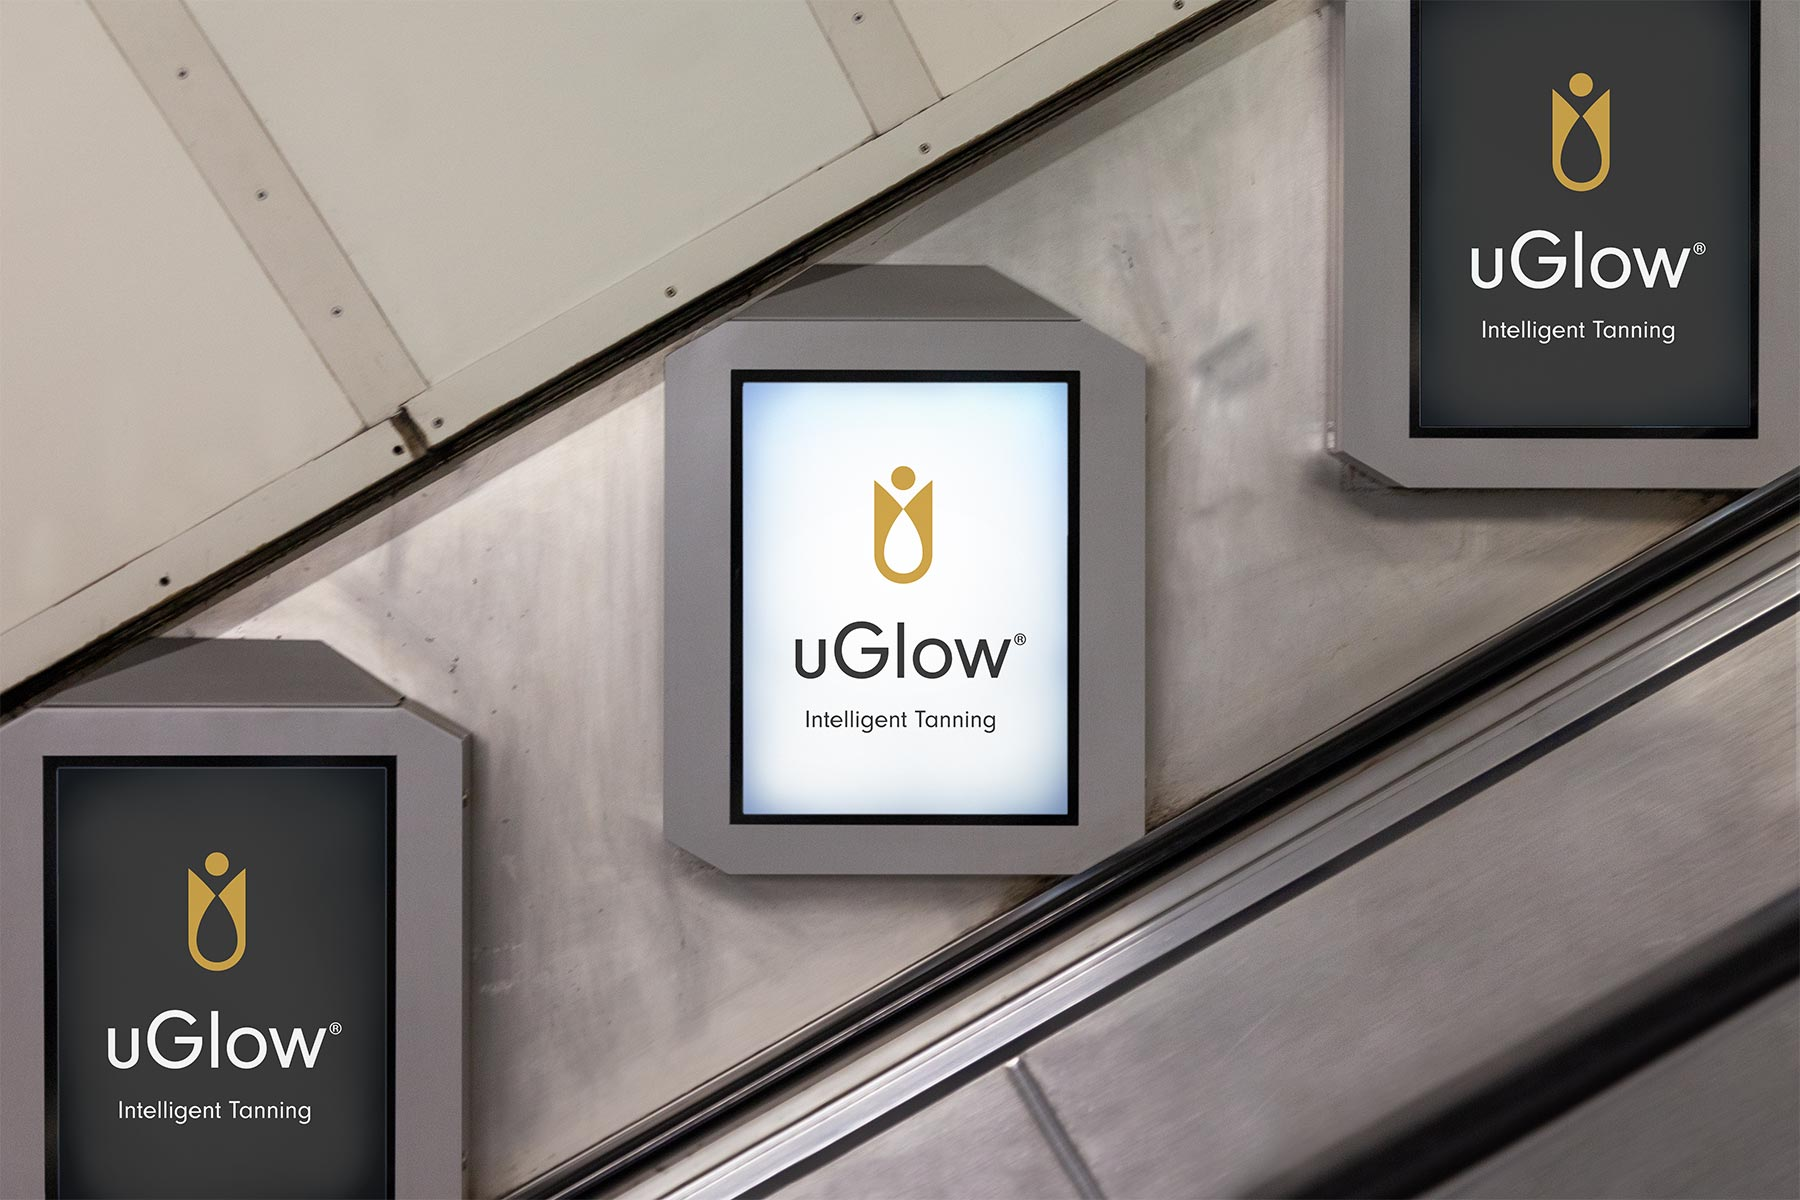 uGlow Logo Presented on Underground Display Posters